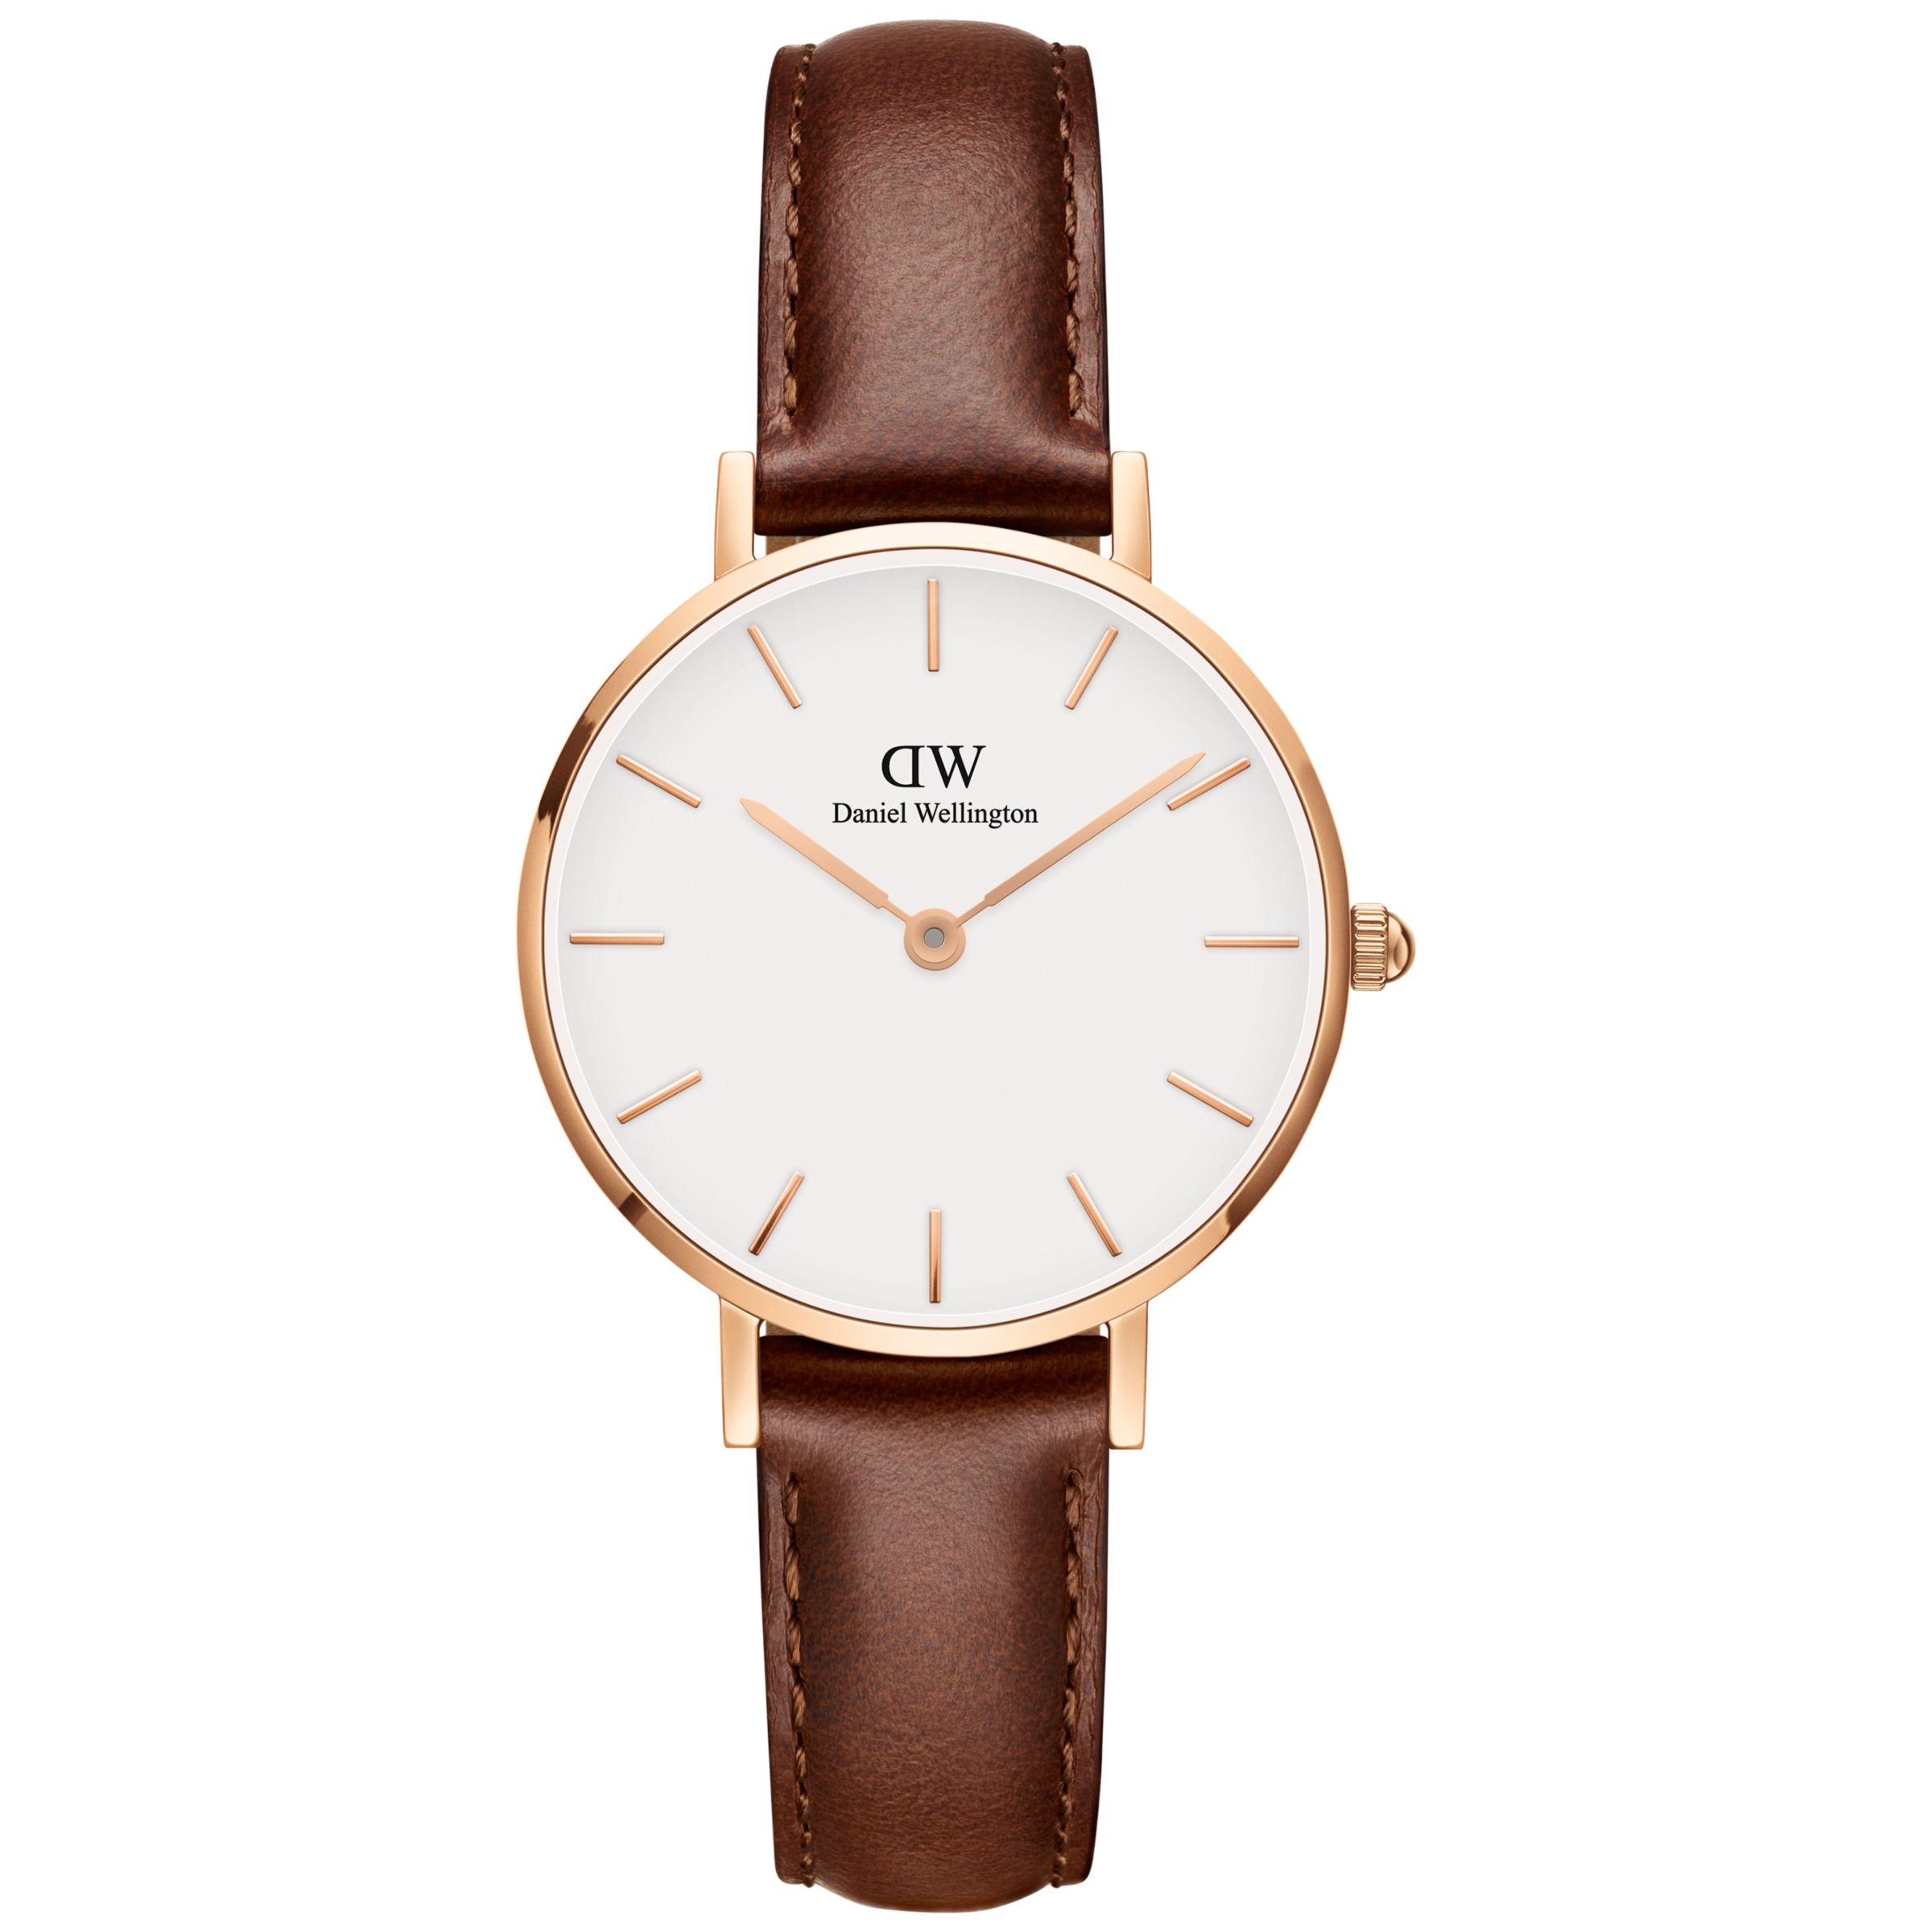 Daniel Wellington Daniel Wellington Unisex 28mm Leather Strap Watch